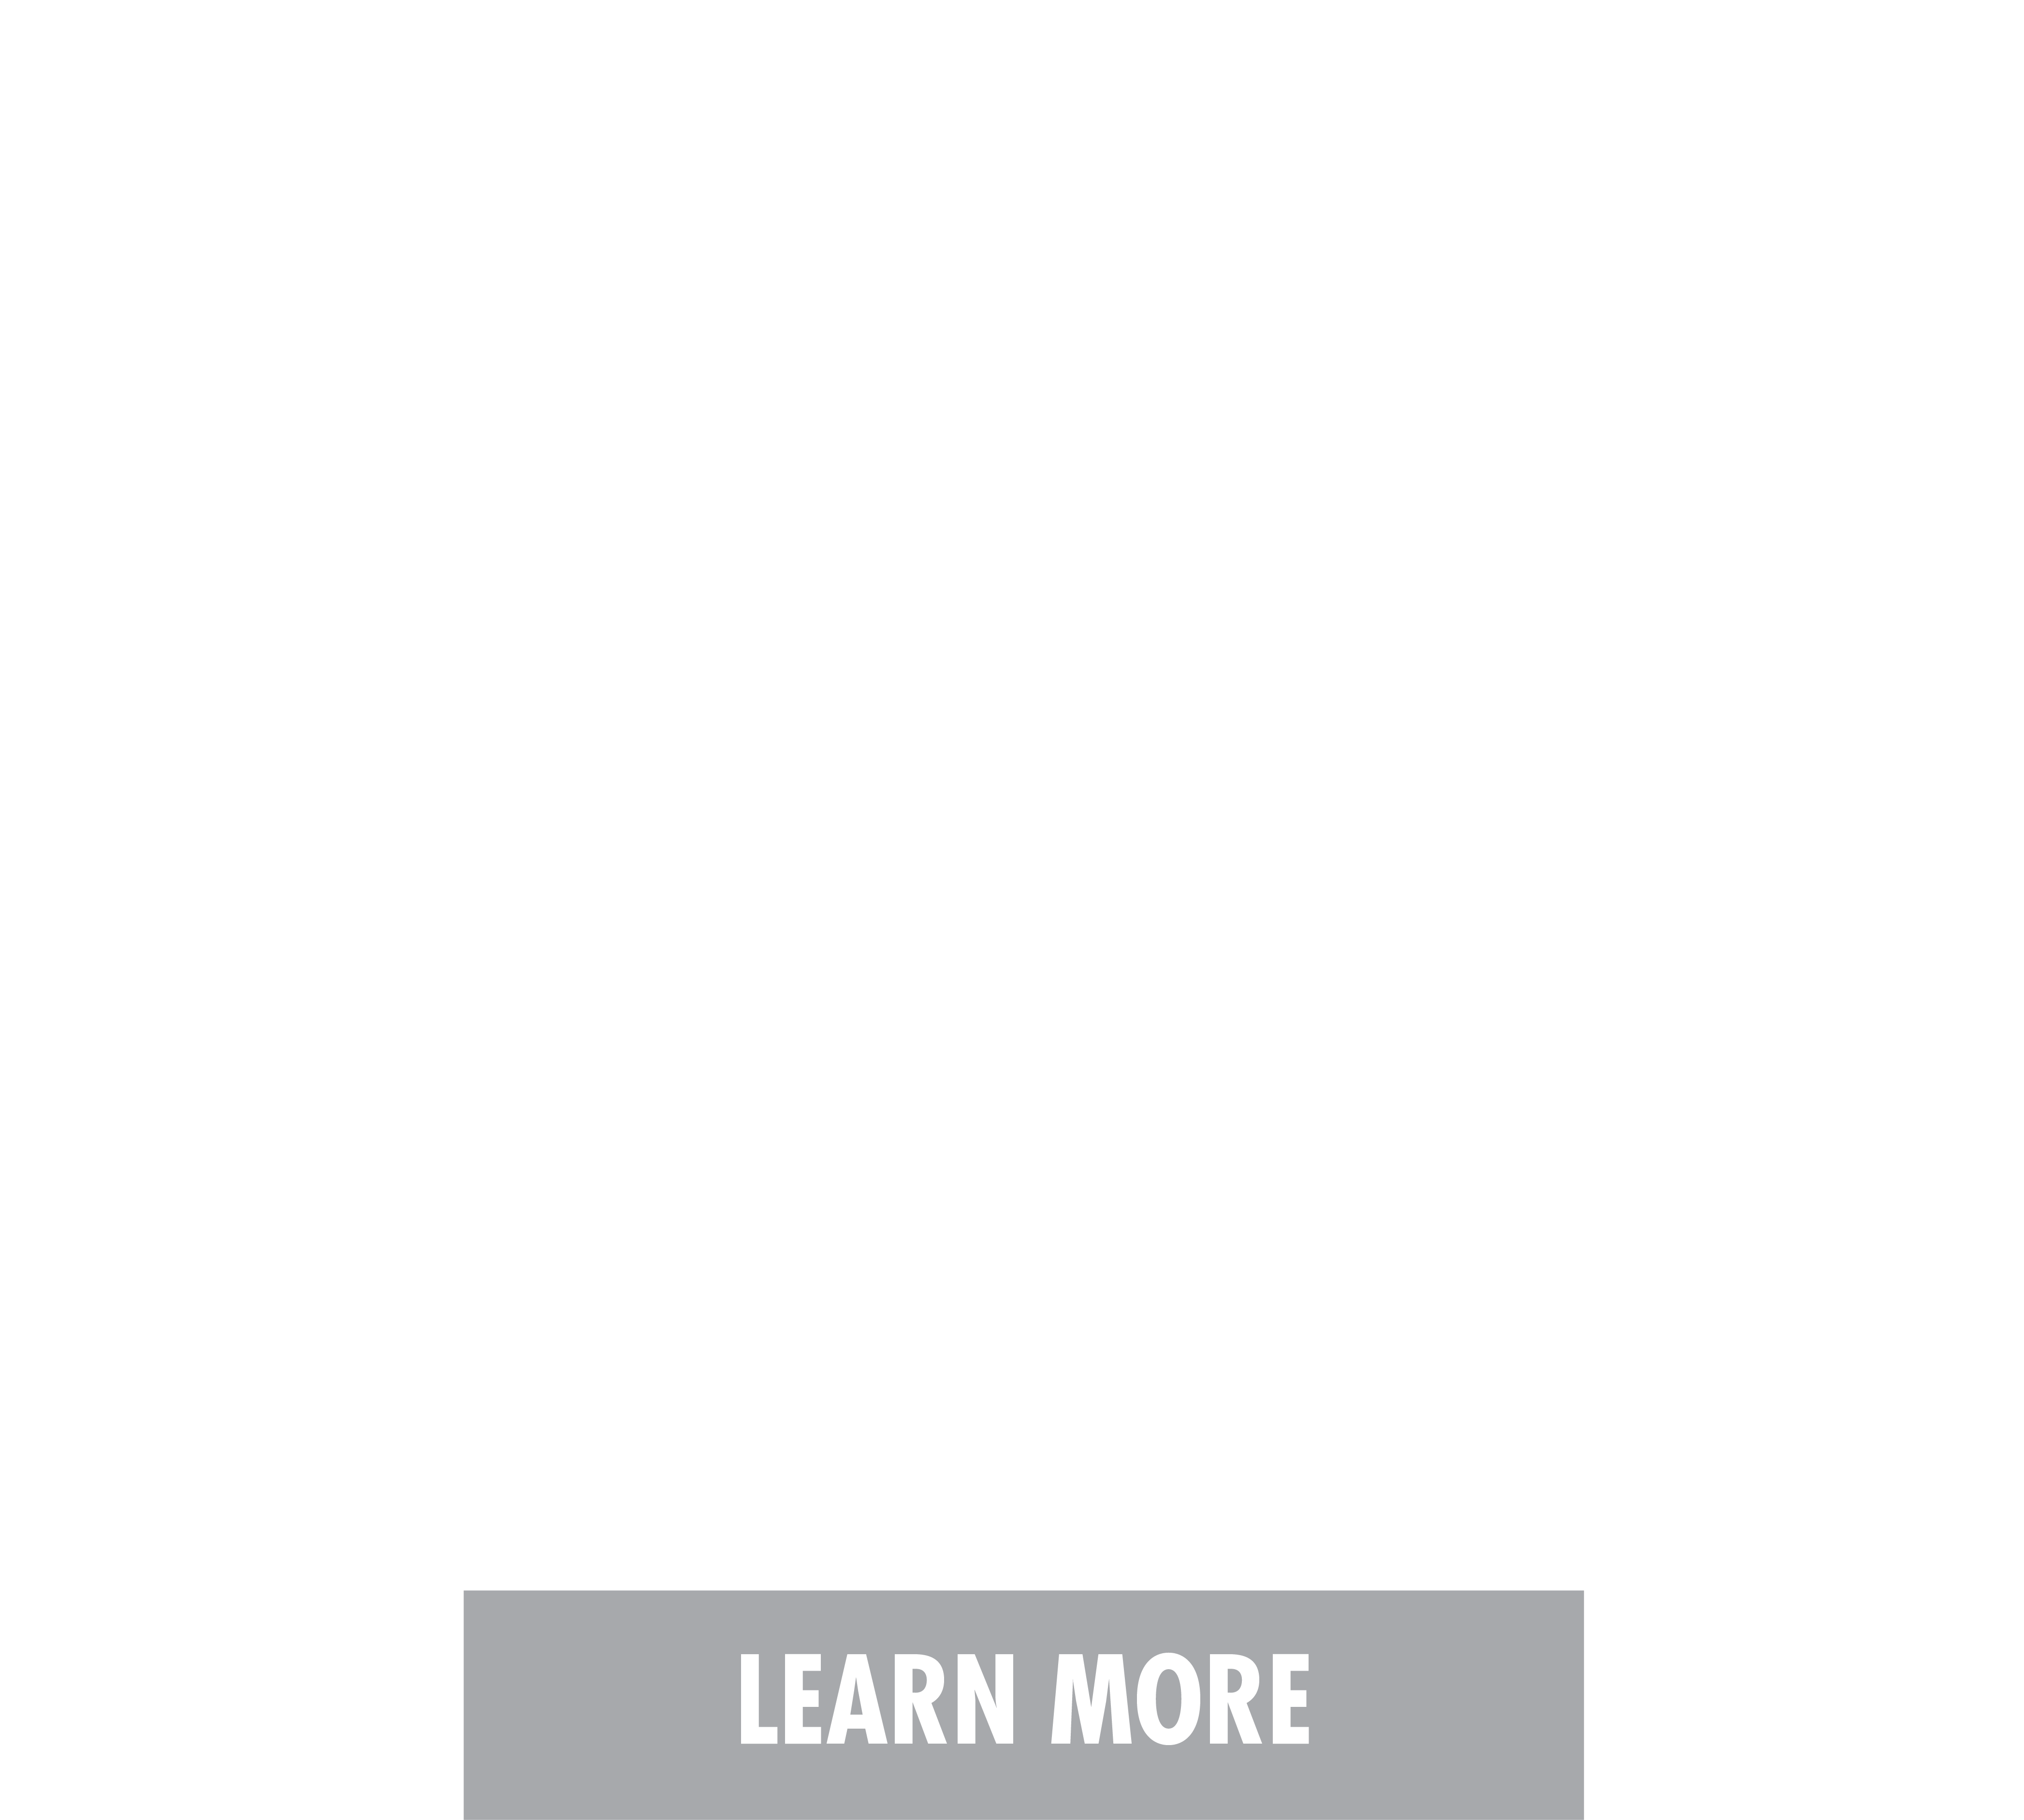 We are excited to share that Highland Homes is the builder for the HGTV Smart Home 2019